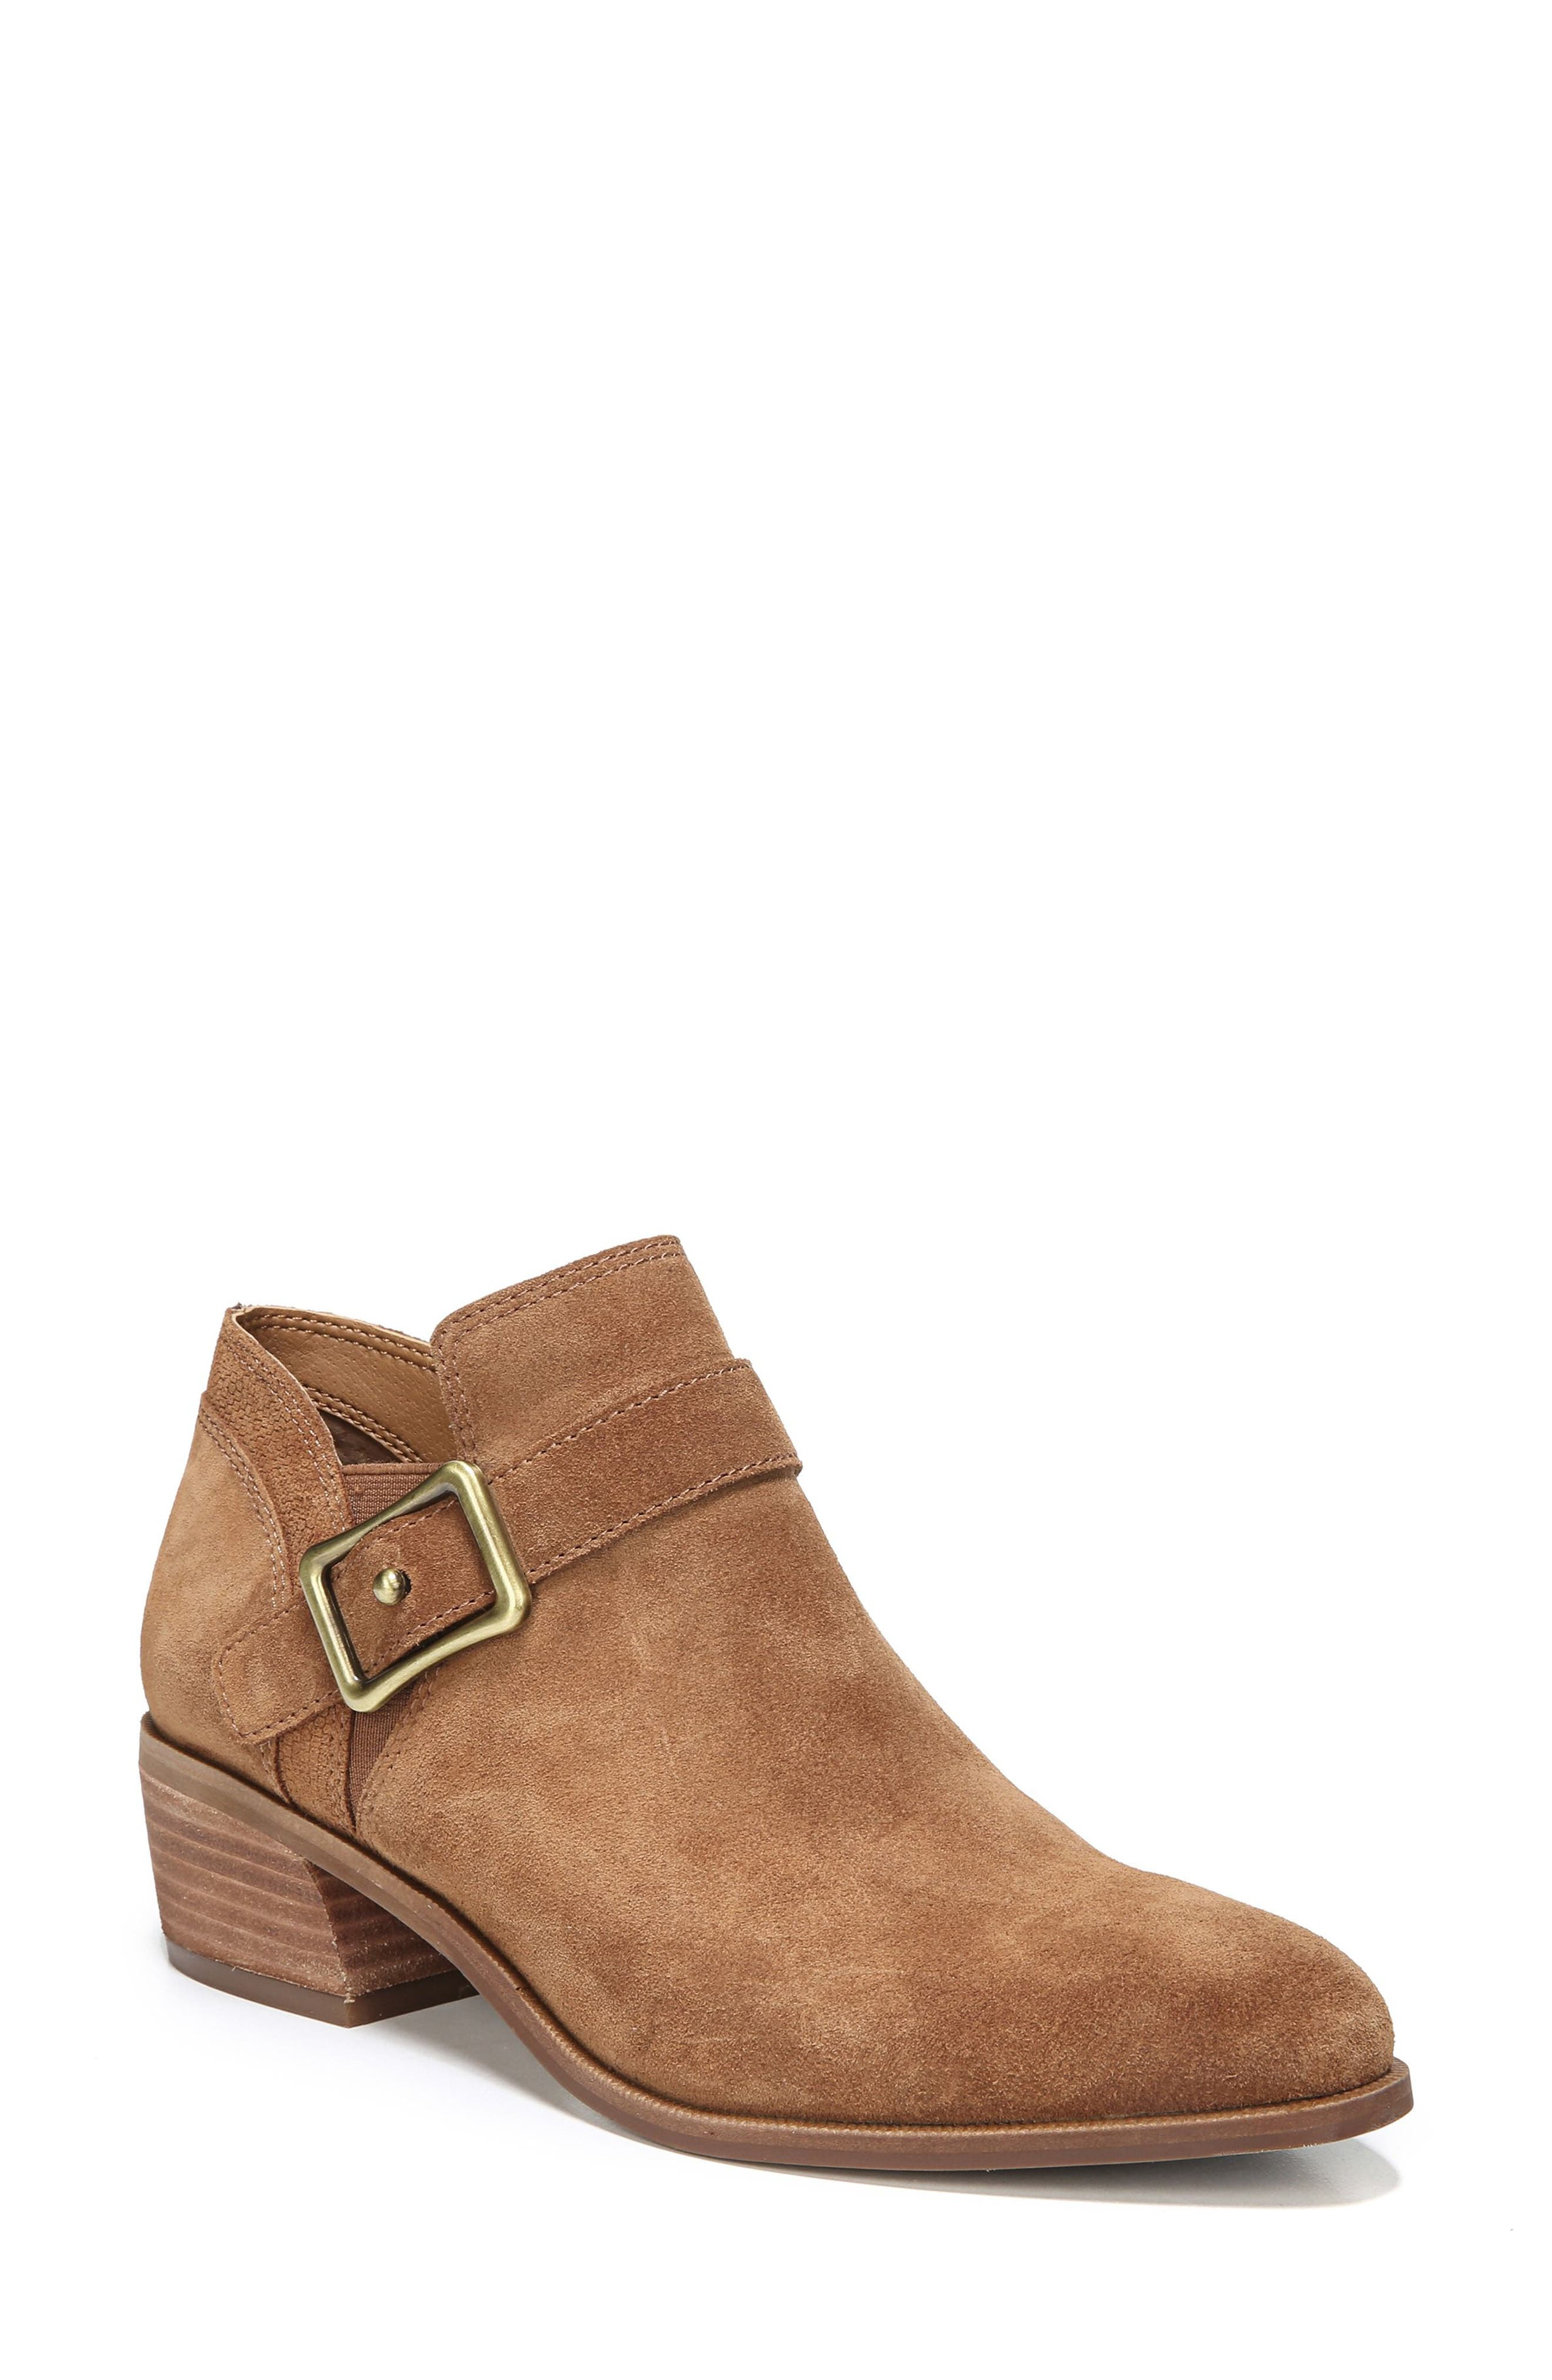 Penna Bootie,                             Main thumbnail 1, color,                             Whiskey Suede